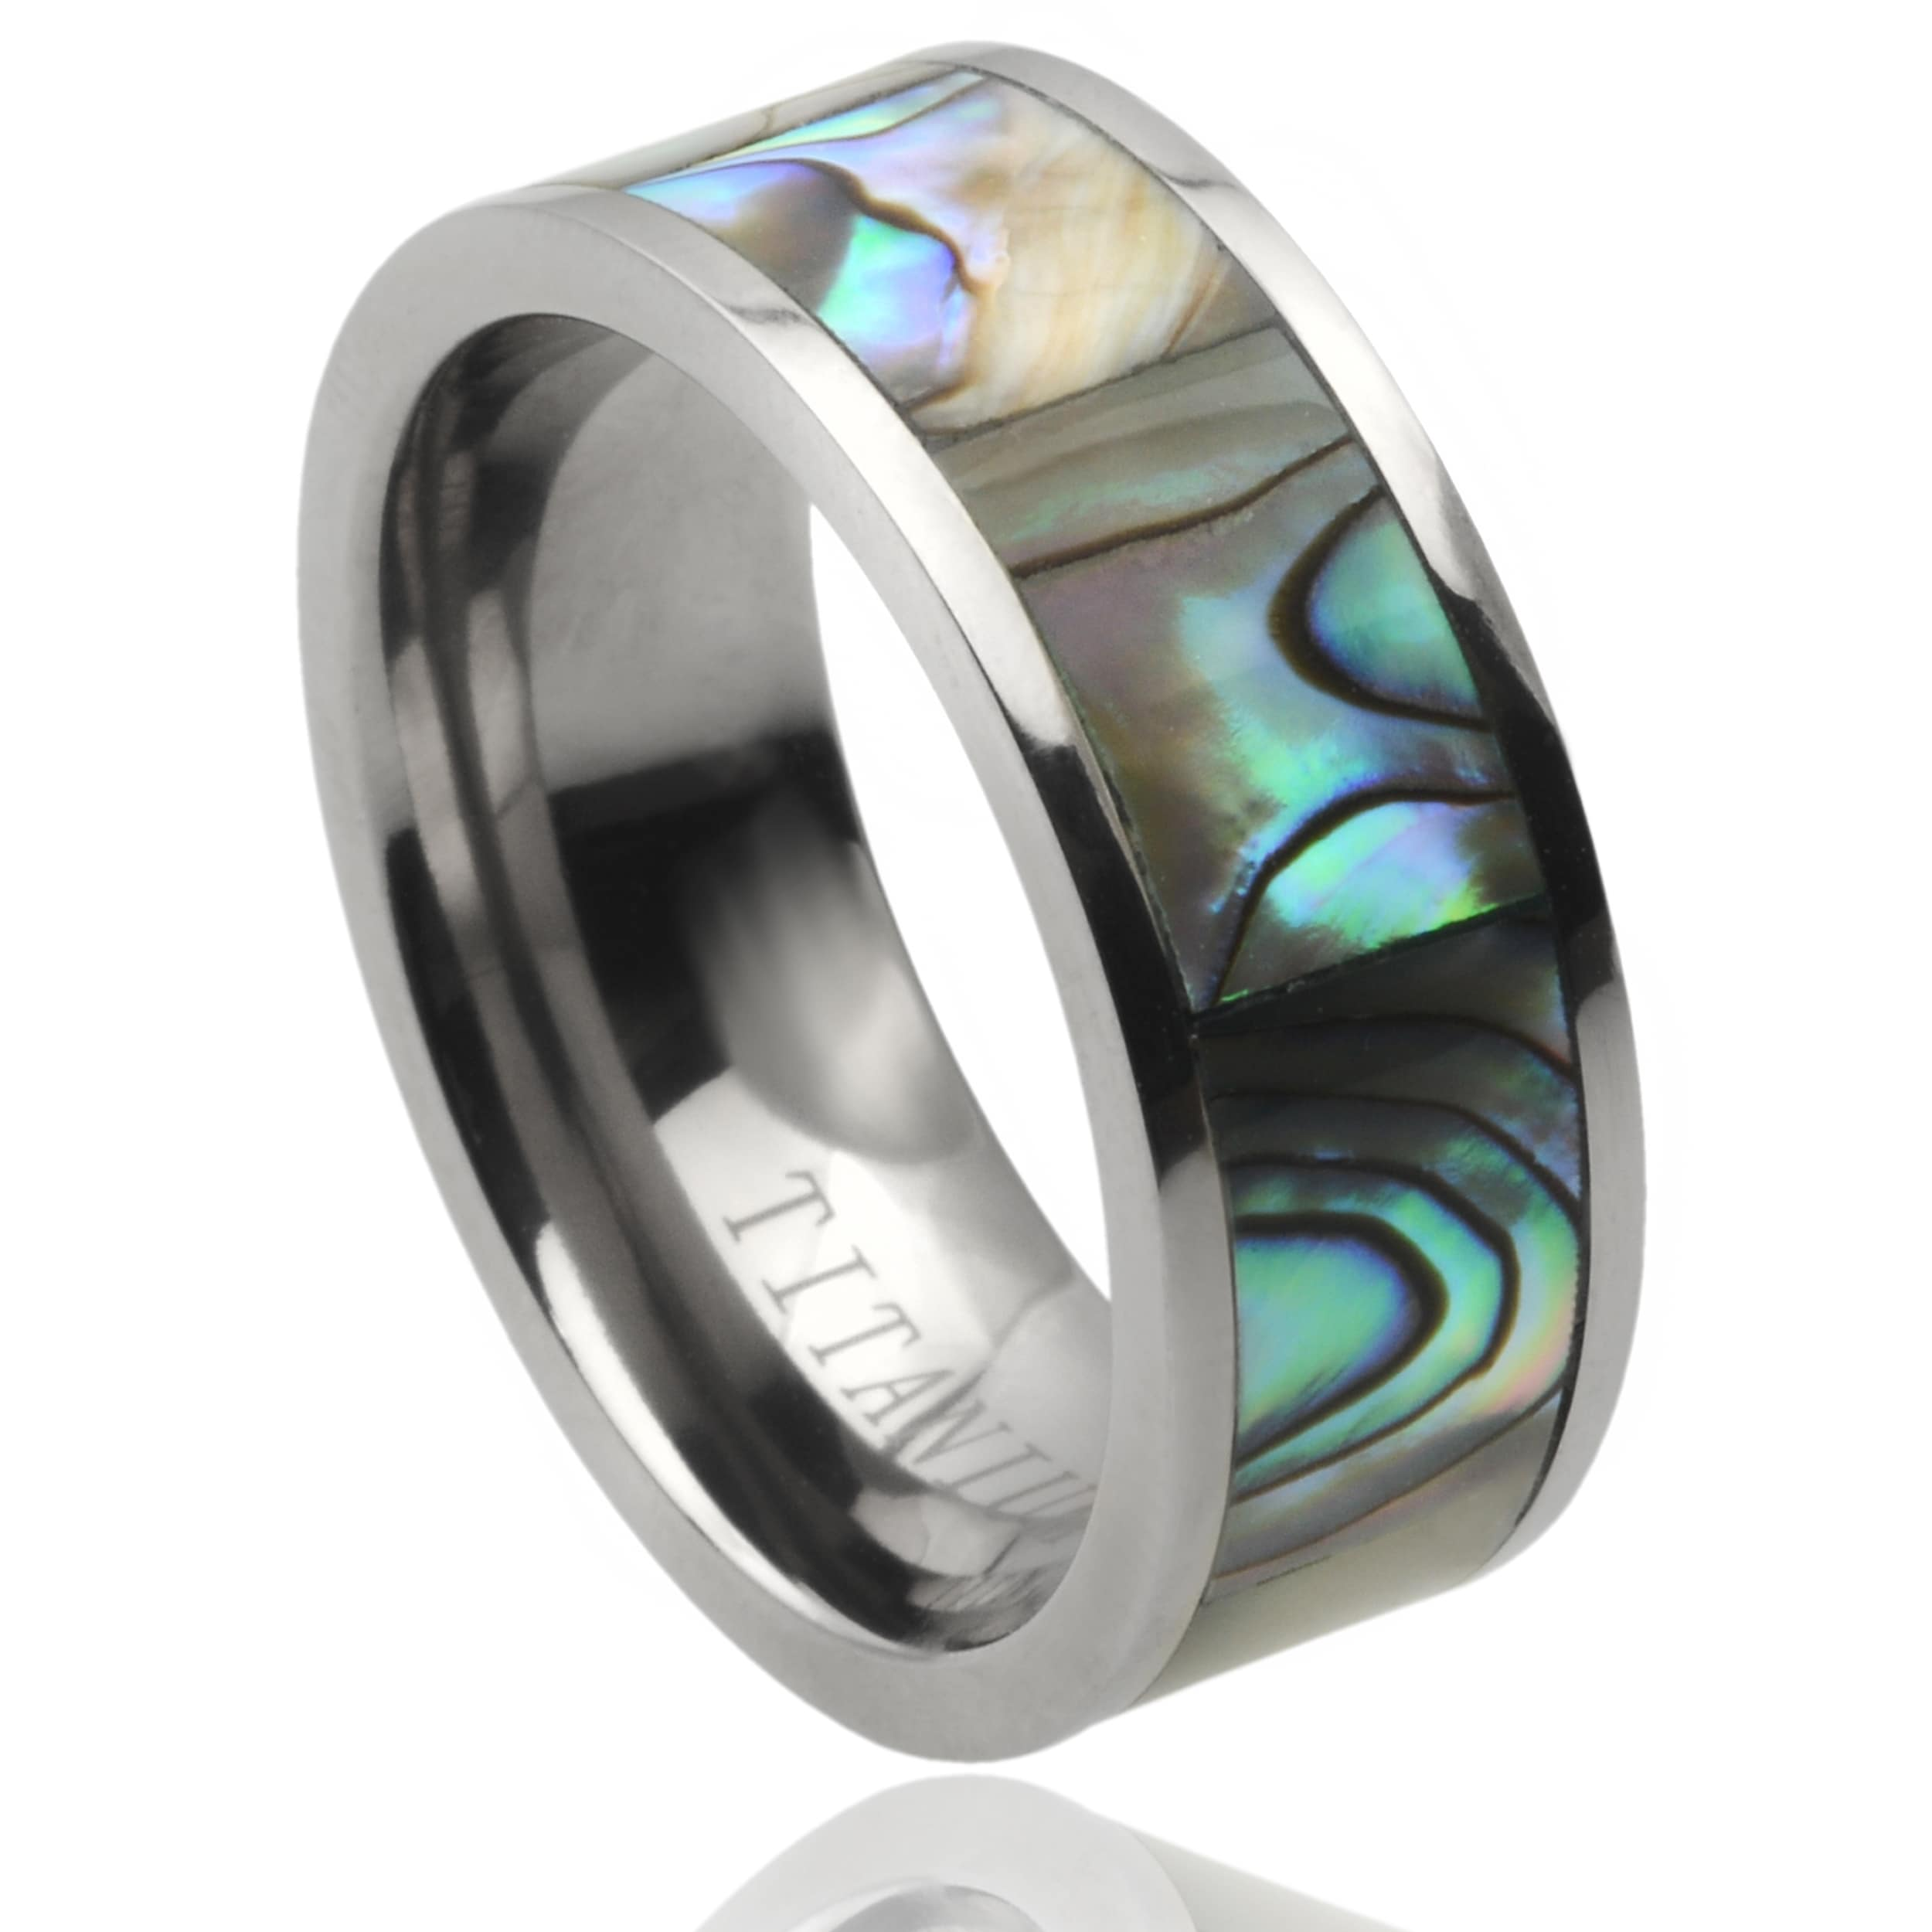 abalone pearl ring goldman shell men mother wedding braided of elegant new inblue rings tungsten bands engagement f and wide s solitaire